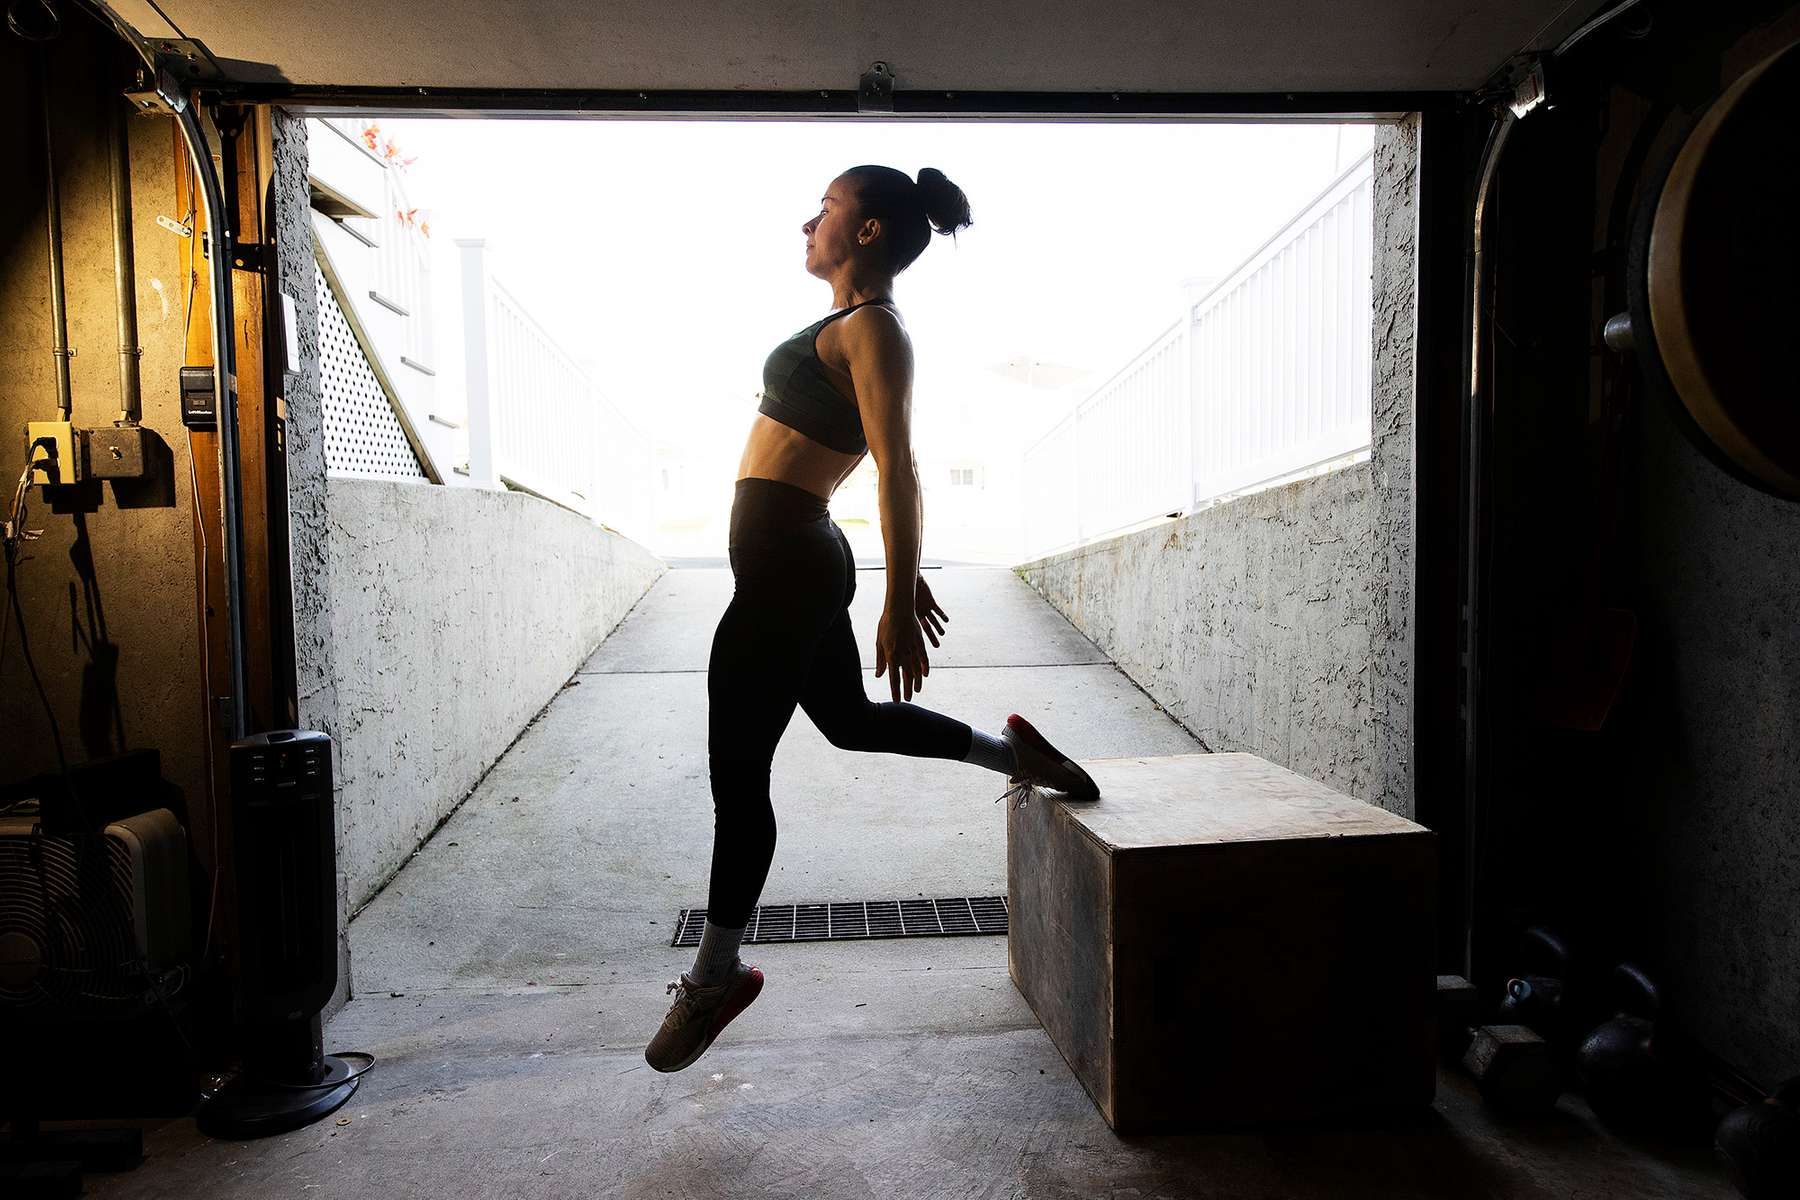 LONG BEACH, NEW YORK - NOVEMBER 21:  Nicole Guerrero exercises in her garage with her virtual Fitness Trainer and Husband Dennis Guerrero on November 21st, 2020 in Long Beach, New York. In March of 2014, Dennis Guerrero and his business partner opened a gym on Long Island. The pair shared a passion for fitness, a dream of creating a local community of like-minded people and a willingness to take a risk. Over the next six years, hundreds of members experienced and embraced a unique environment that fostered a palpable energy, helping athletes of all ages and abilities reach their potential.  The gym became a place to share achievements, work through losses and overcome illness. But like so many other businesses, it seemingly had no way of overcoming the financial impact and ongoing uncertainty of a global pandemic. With the arrival of Covid-19, the gym shut its doors back in March, with no idea when it would reopen. The owners, though, were far from done. They lent out every piece of equipment they owned to the gym's members, continued to pay their staff and worked to set up outdoor classes in hopes of keeping their membership active and healthy. As the shutdown stretched on, it became clear that the physical gym was closed for good.  They have since reinvented themselves and are now called Life Outside the Box.  Their business model has changed drastically, and all their workouts have gone virtual.  The workouts are conducted by a small group of fitness trainers led by Guerrero.  The members pay a monthly fee and can take live Zoom fitness classes.  They are coached by the virtual trainers in real time.  More and more people have reconstructed their garages, spare rooms, backyards, and basements into home gyms since the COVID-19 pandemic hit the United States.  (Photo by Al Bello/Getty Images)